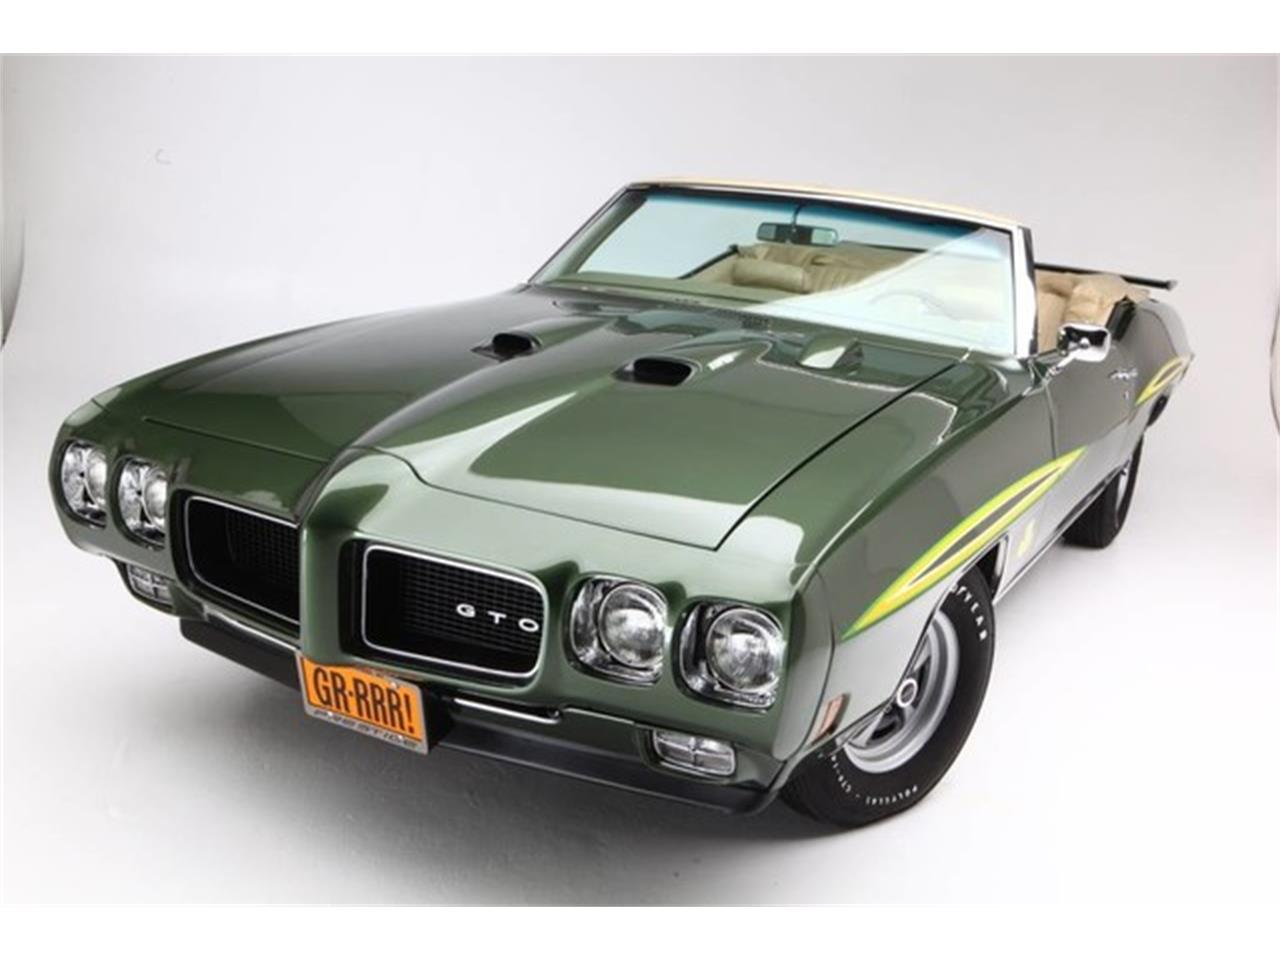 Large Picture of Classic '70 GTO (The Judge) - $219,000.00 - PU25